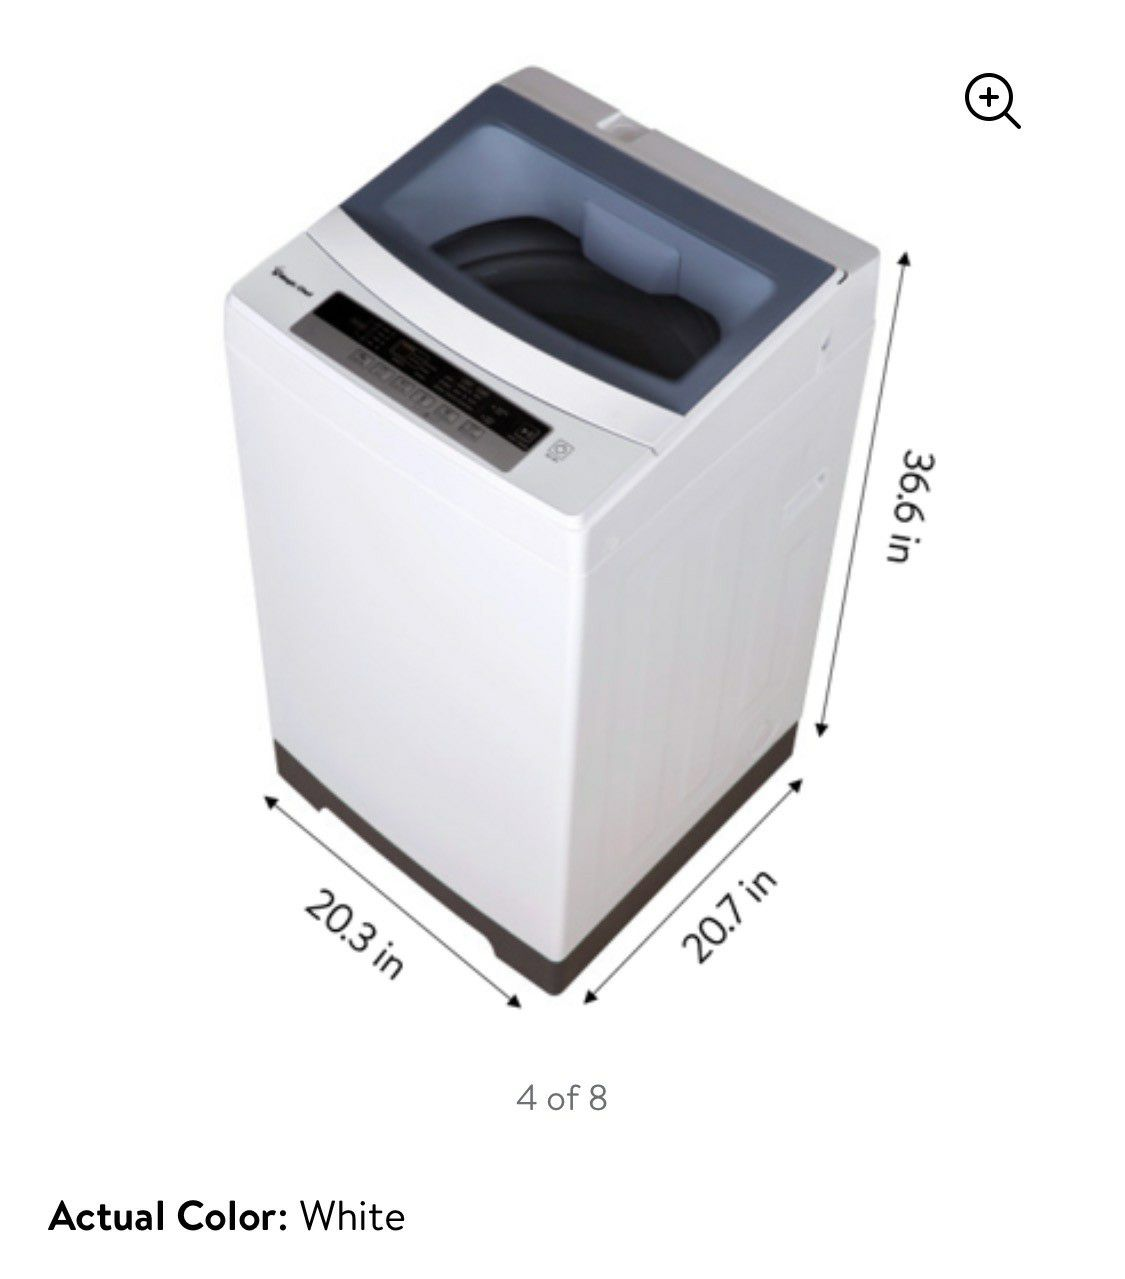 Magic chef 1.6 cu ft topload compact washer and Dryer 2.6 cu ft